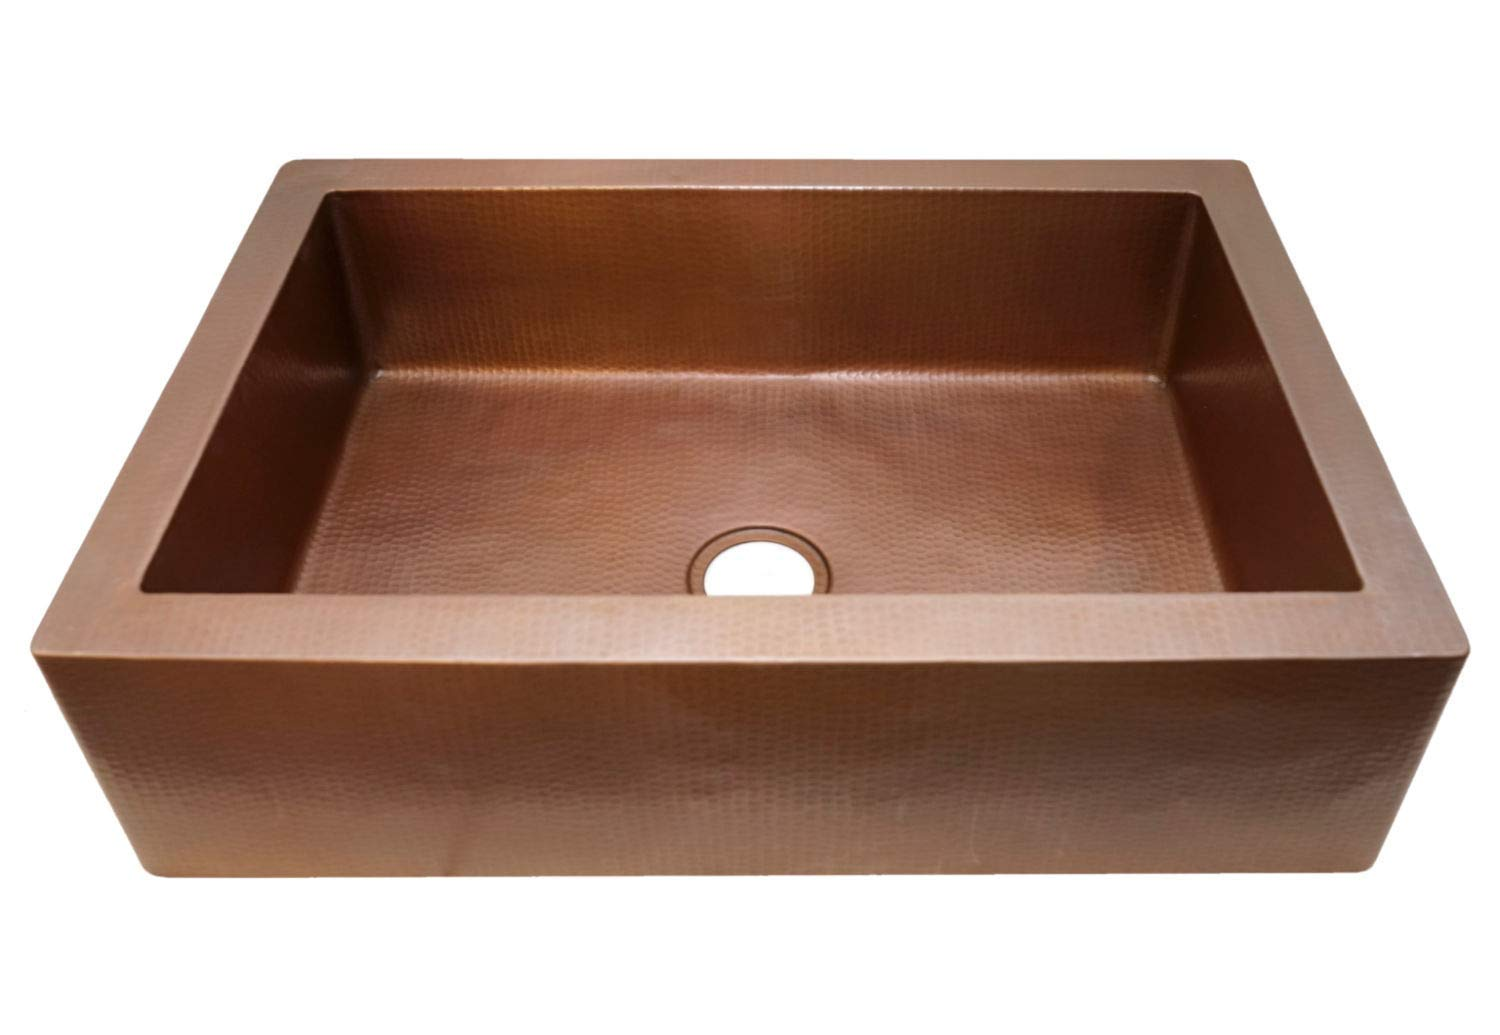 Soluna Farmhouse Copper Sink – Cafe Natural Finish 33 Copper Kitchen Sink – Pure Single Well Copper Sink – Premium Copper Sink – Antique Hammered Copper Kitchen Sink – Luxury Copper Farmhouse Sink